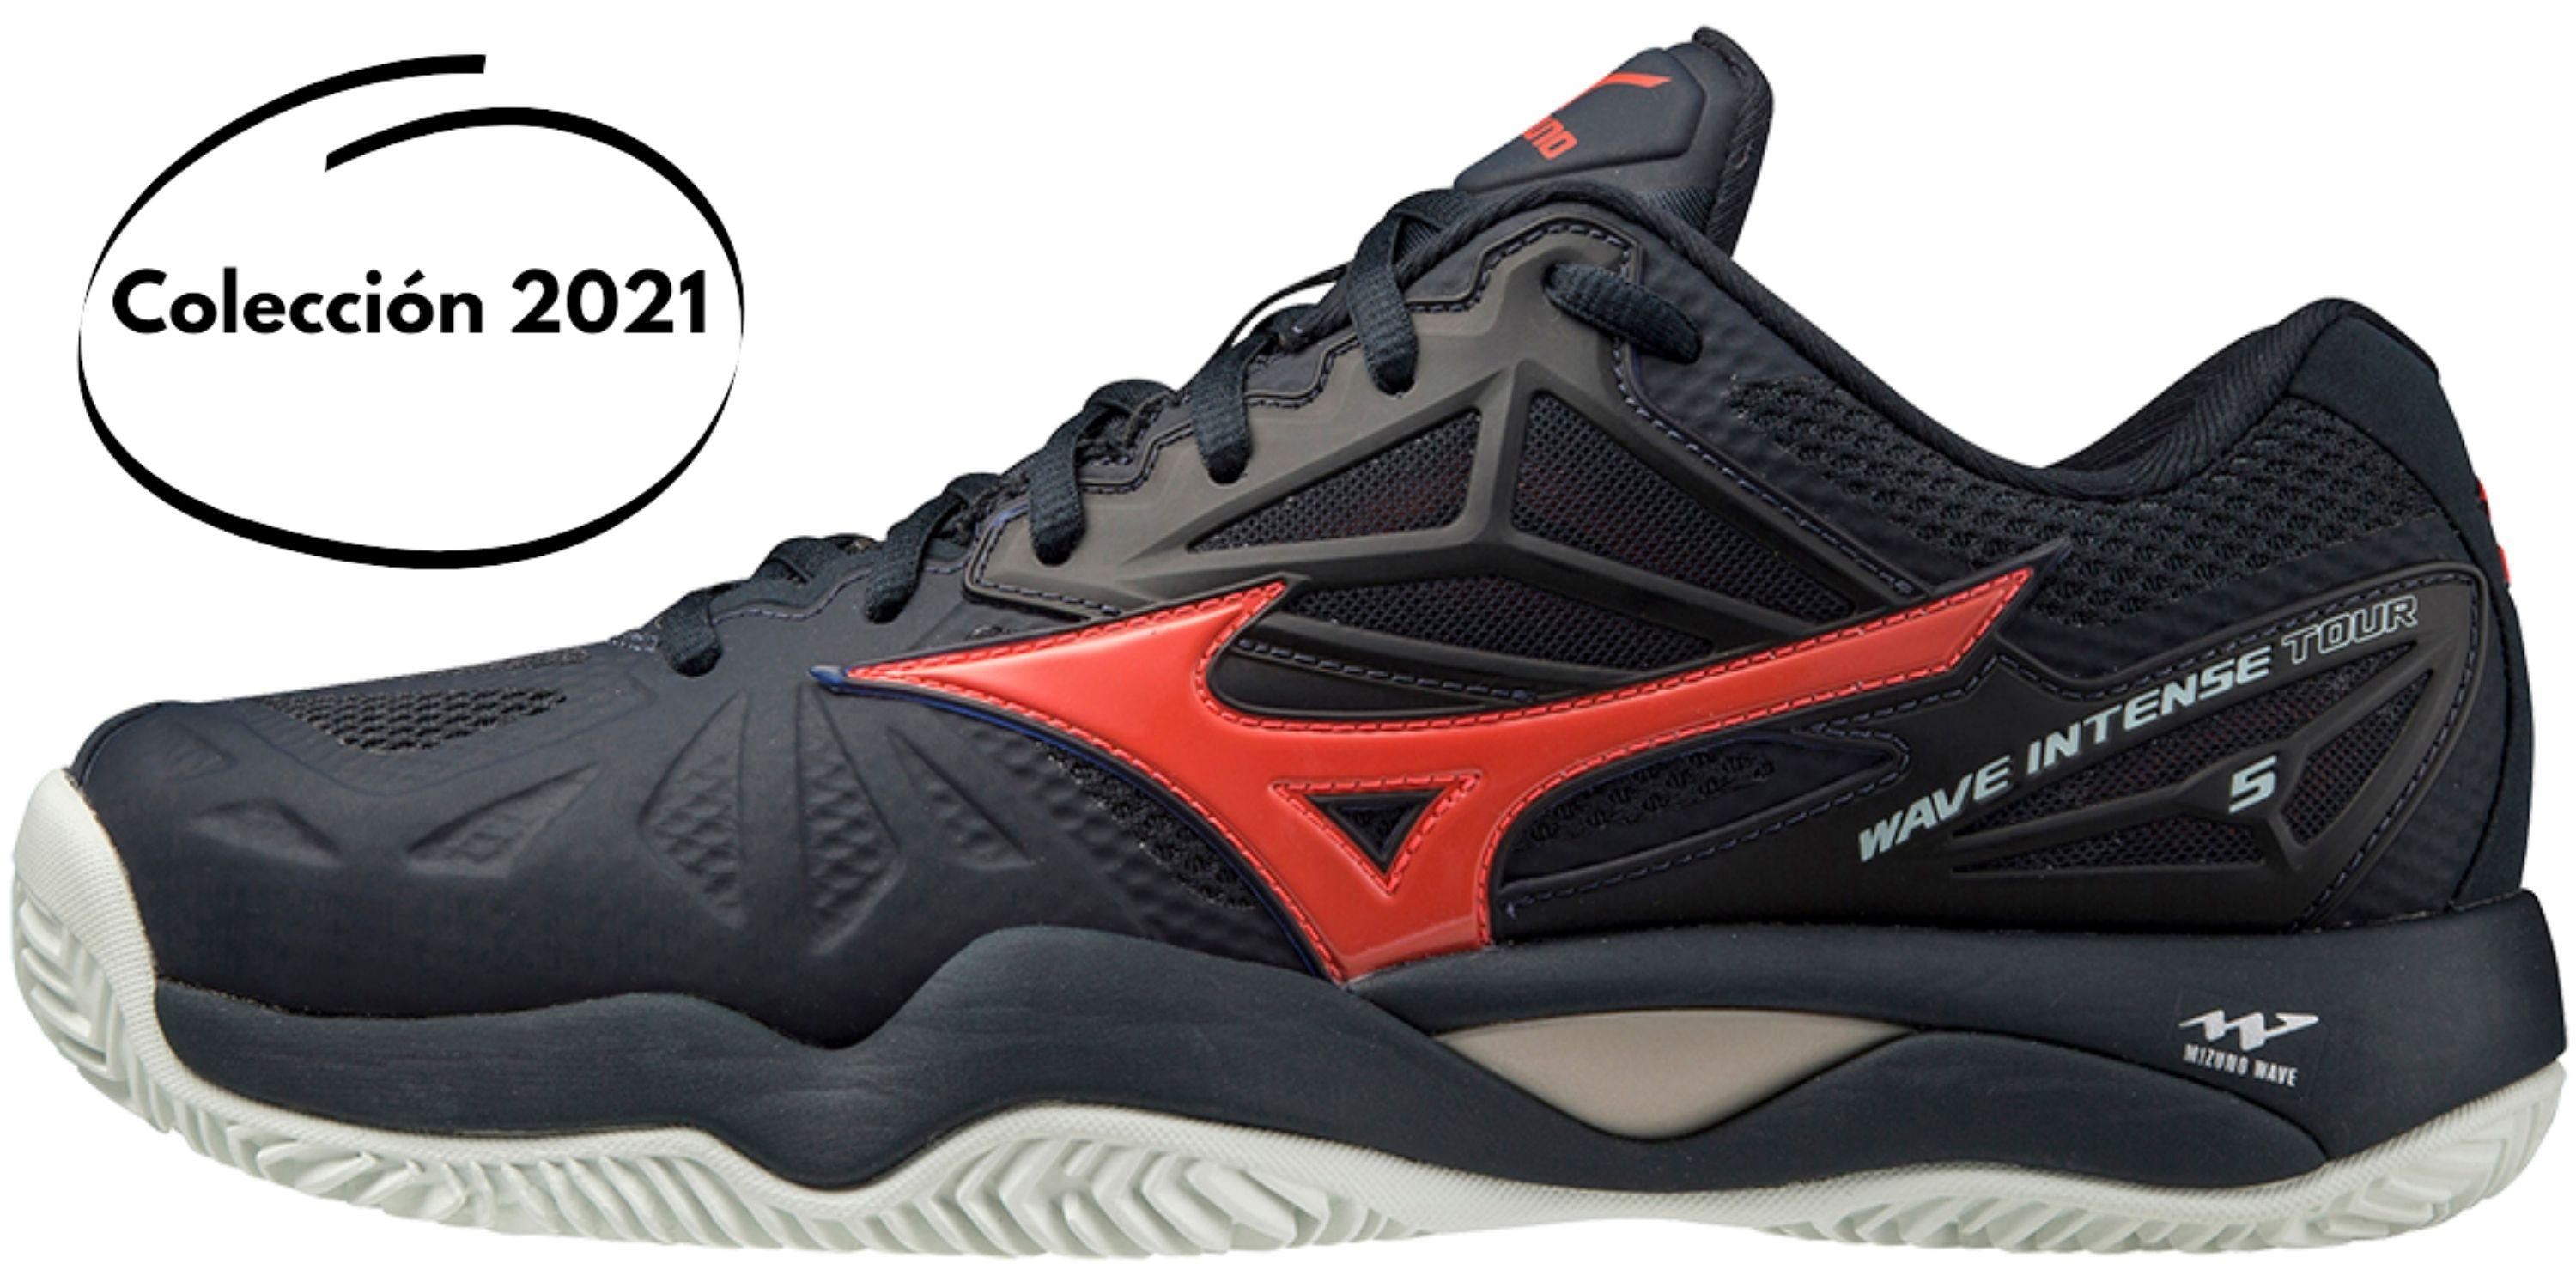 Zapatillas MIZUNO WAVE INTENSE TOUR